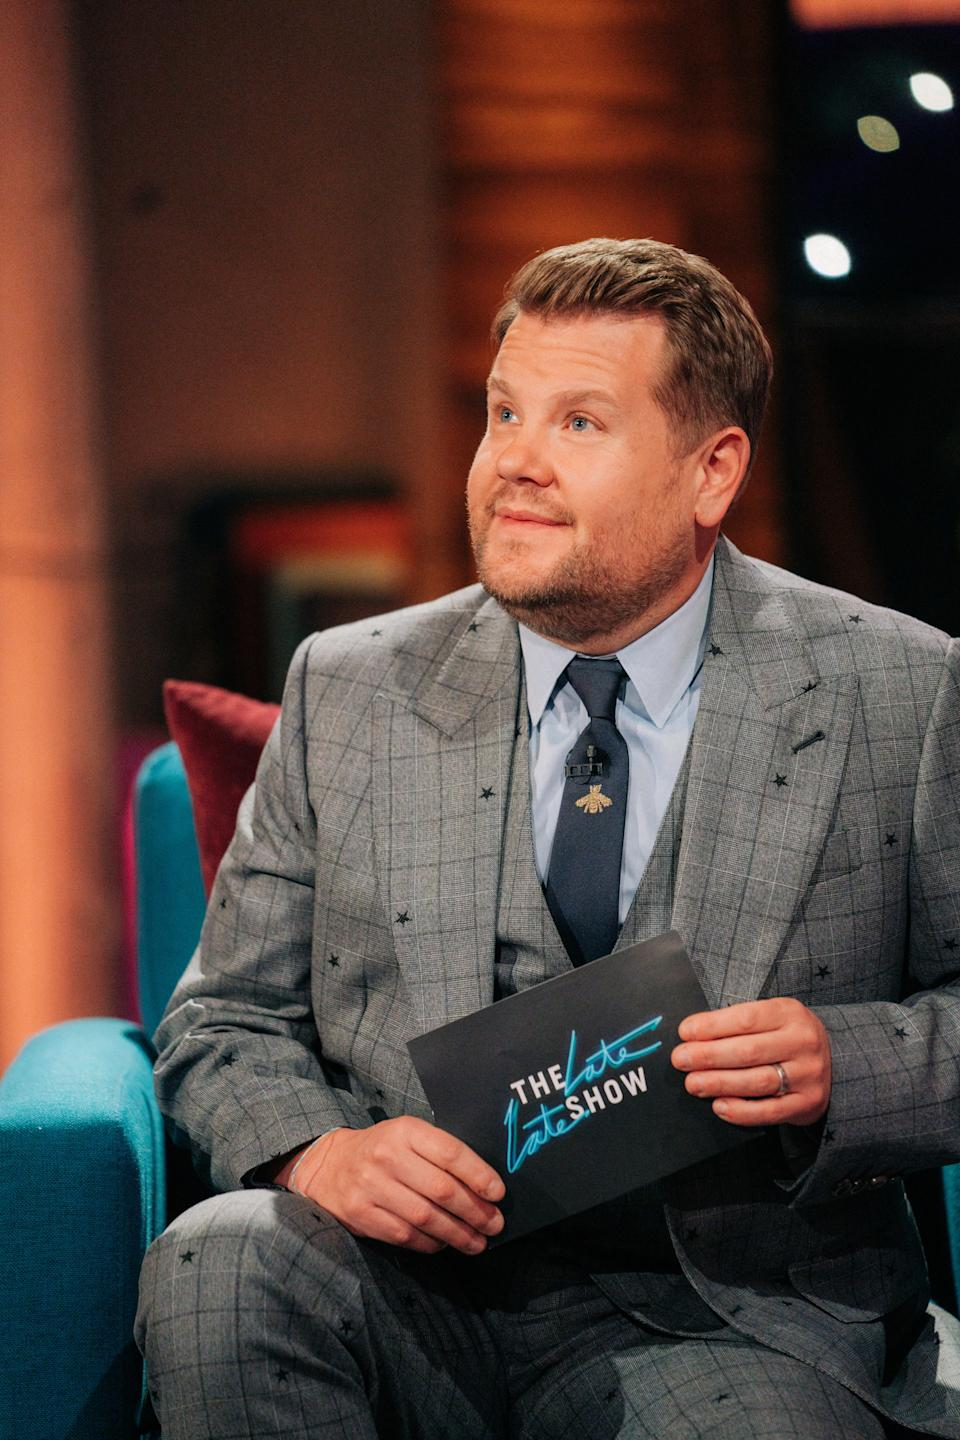 LOS ANGELES - APRIL 15: The Late Late Show with James Corden airing Monday, May 3, 2021, with guest Tiffany Haddish. (Photo by Terence Patrick/CBS via Getty Images)